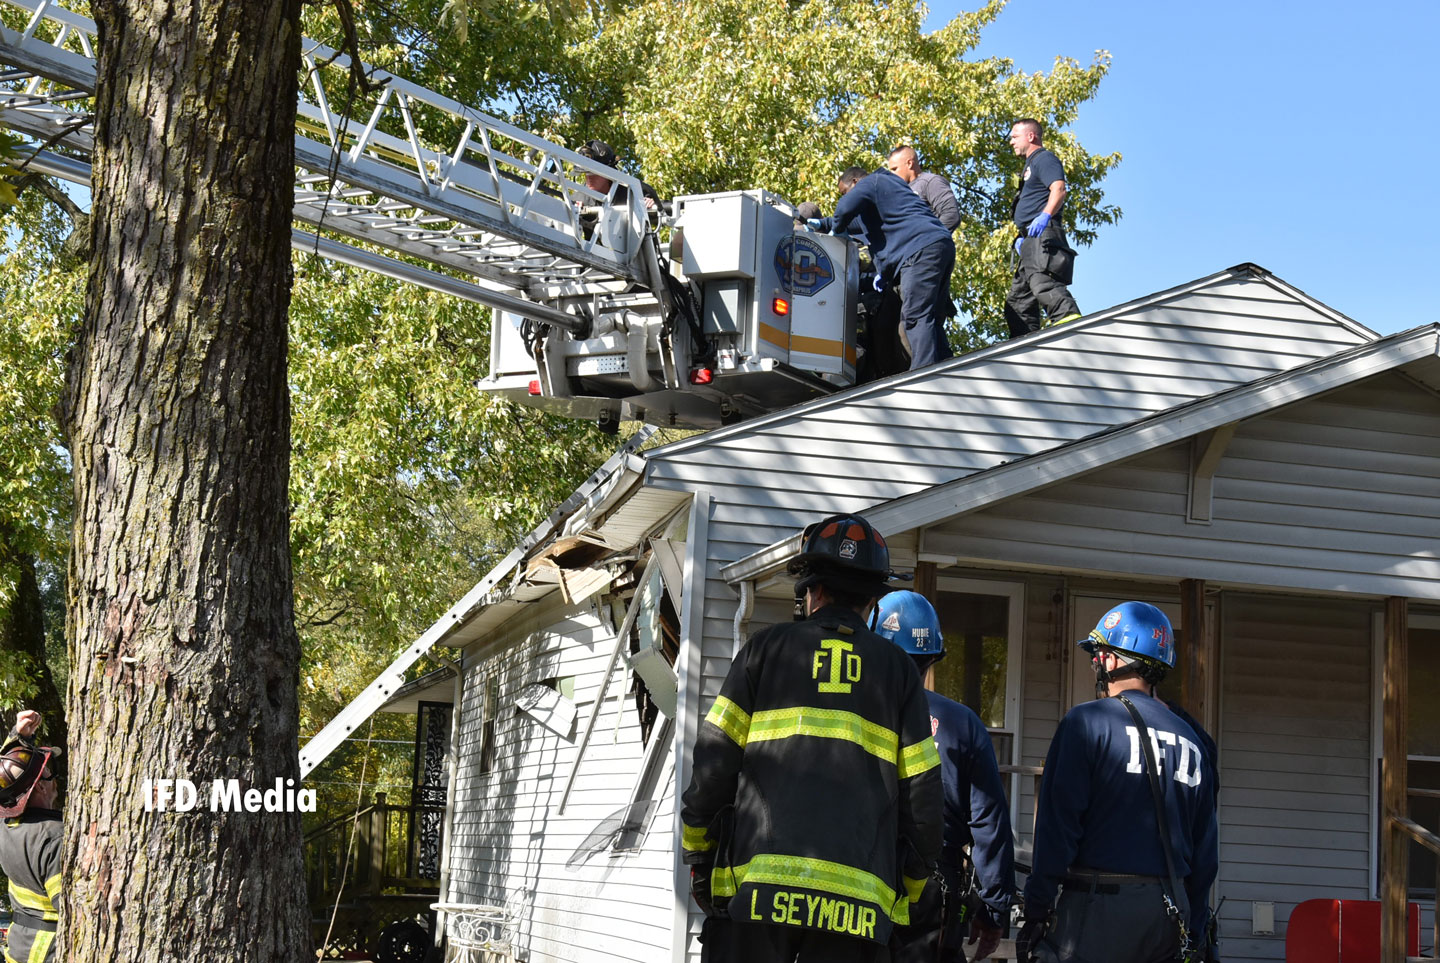 Firefighters operate out of a tower ladder bucket